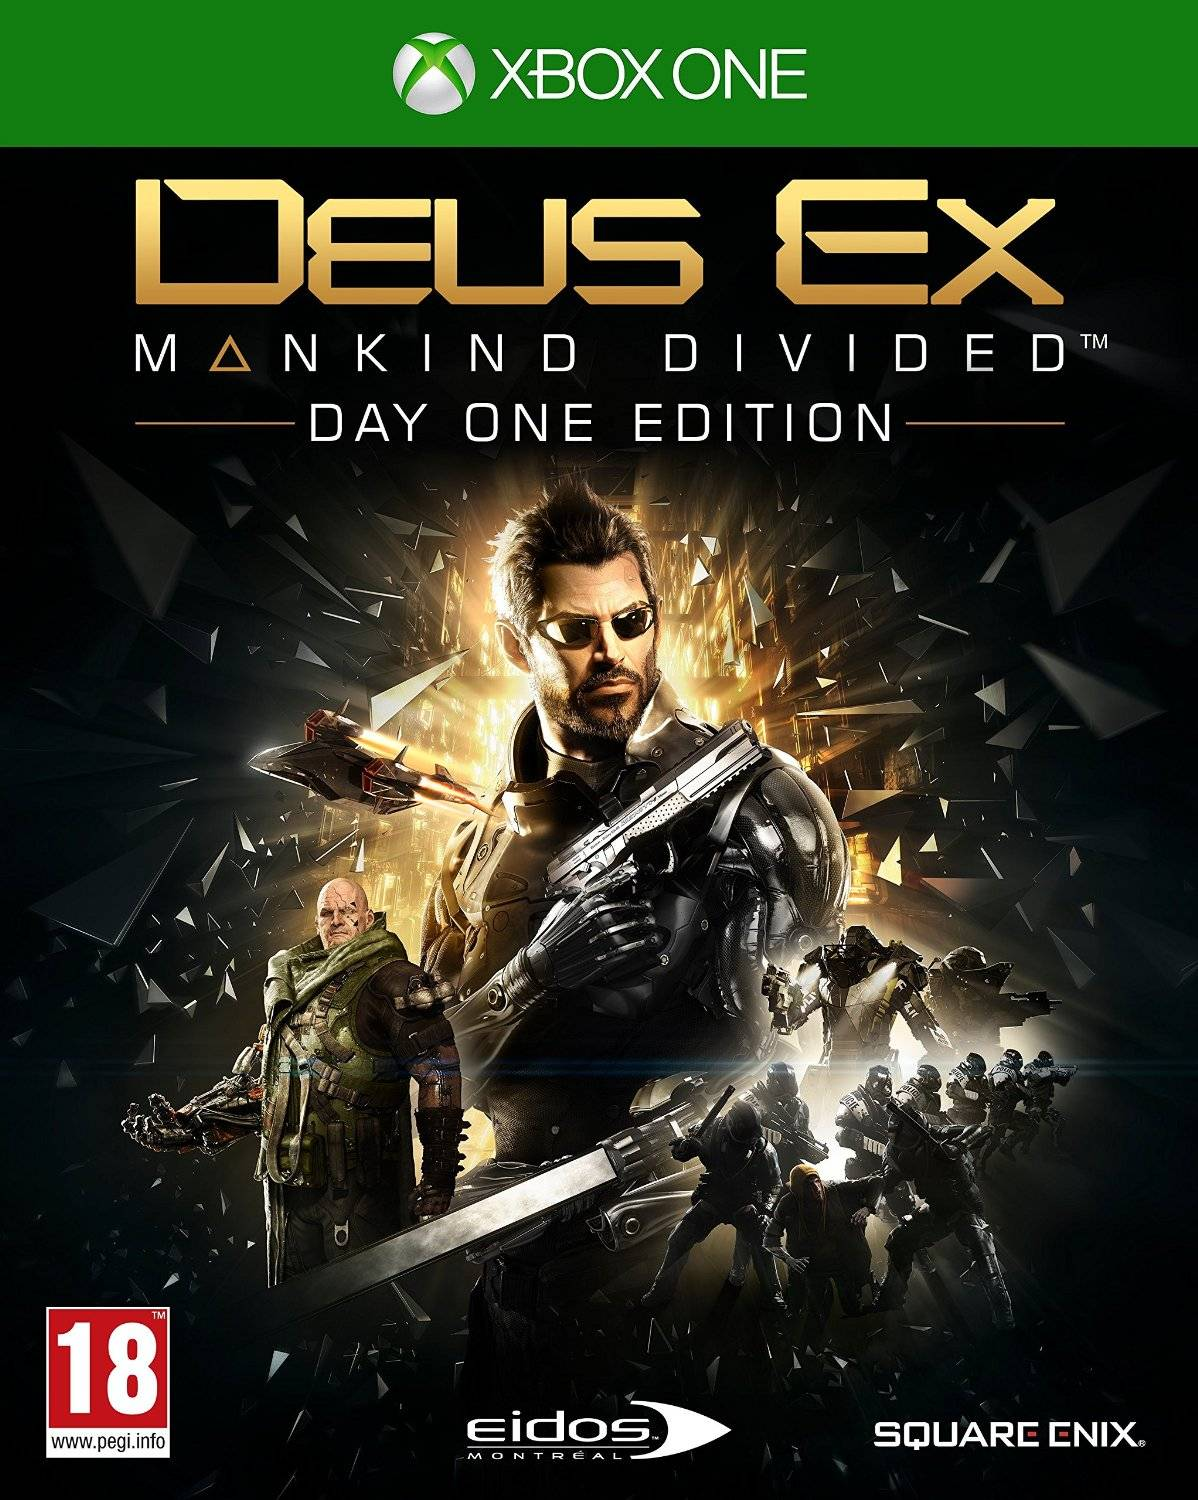 Square Enix Deus Ex: Mankind Divided Steelbook Edition Day One Xbox One